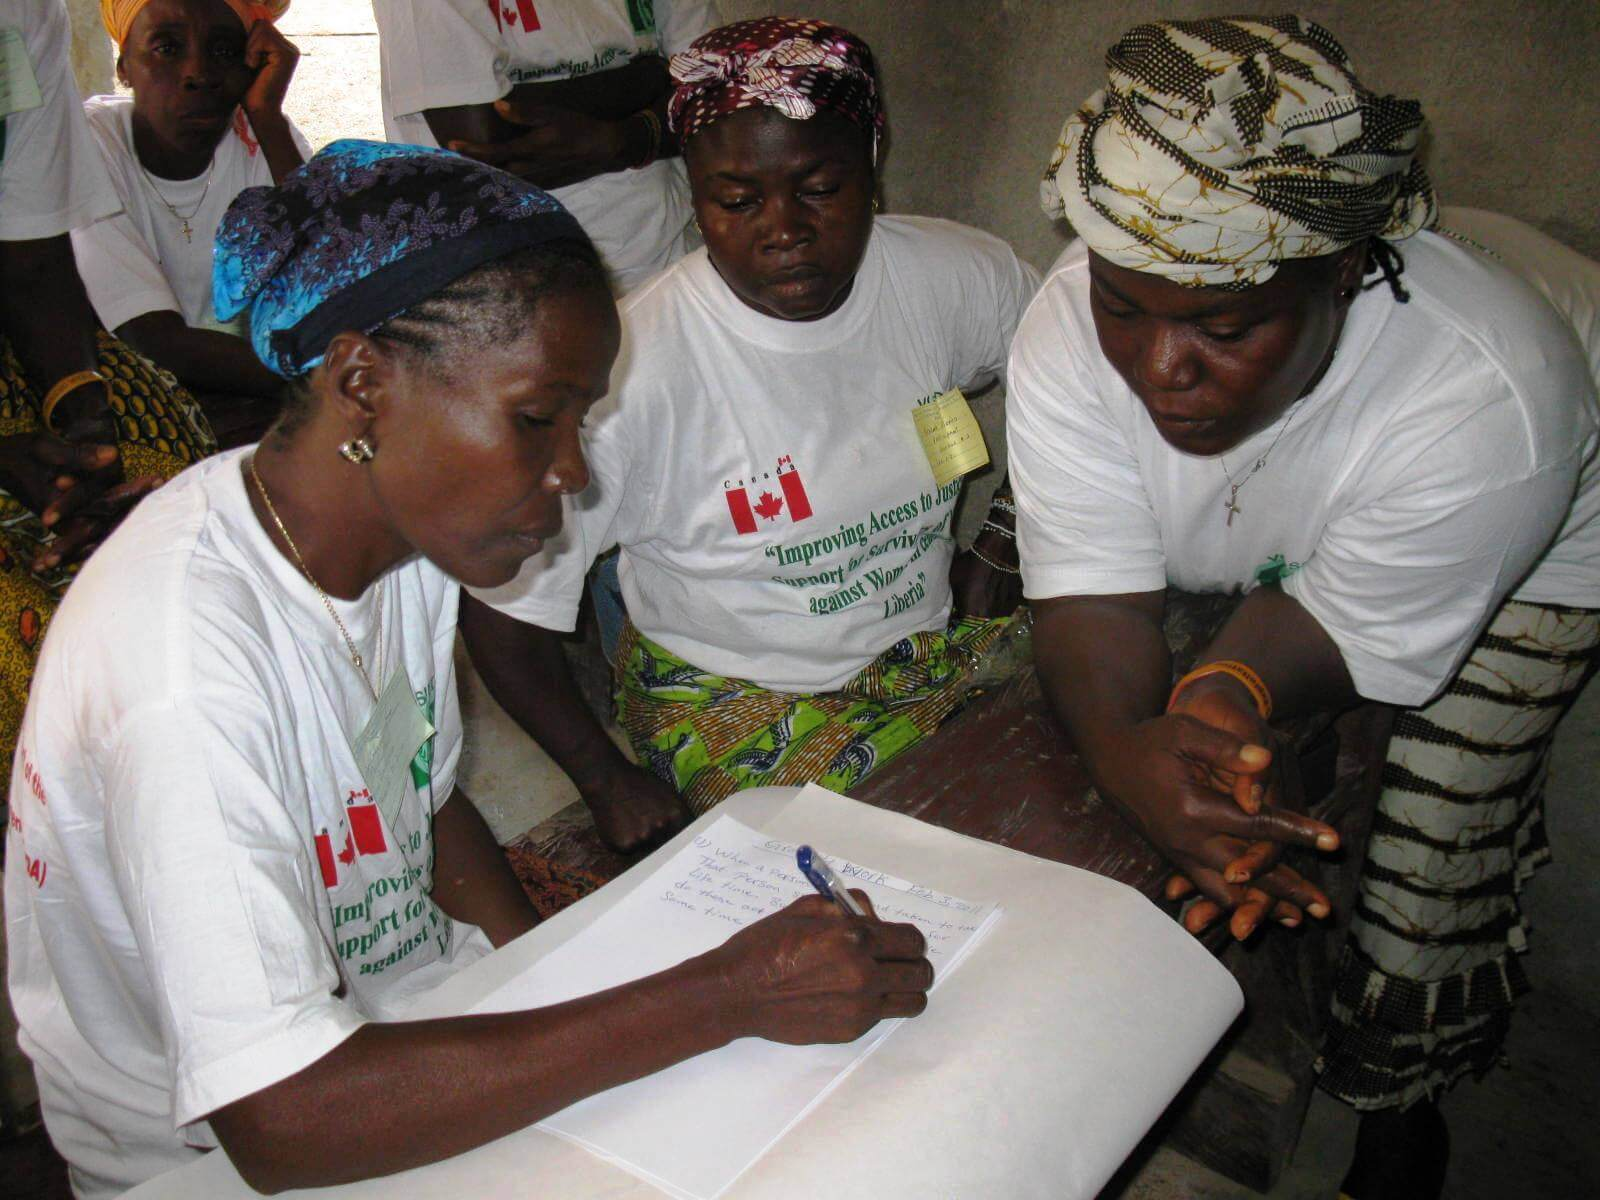 Empowering Women and Girls for Shared Prosperity in Liberia and the Sub-region